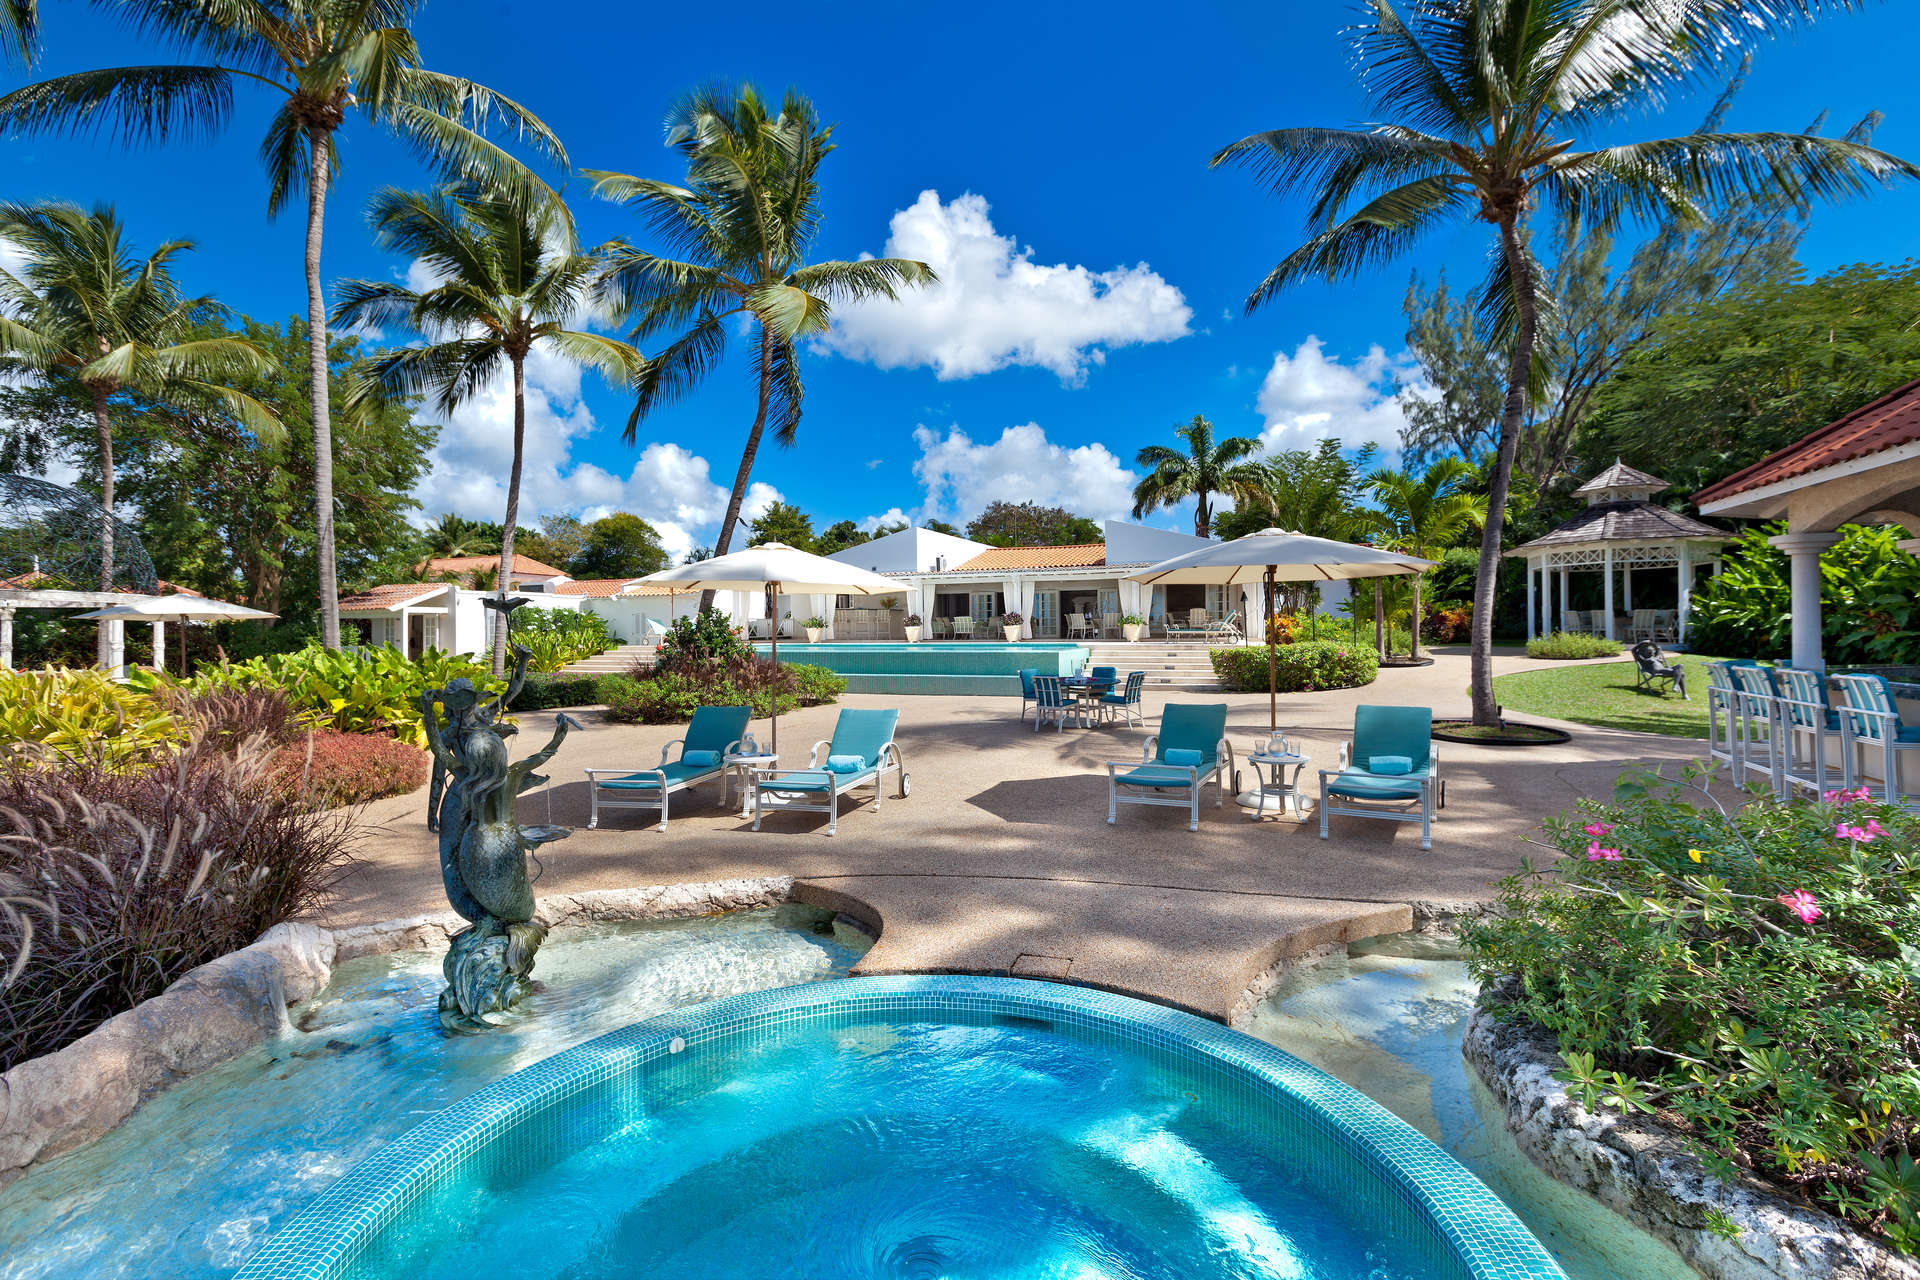 Luxury villa rentals caribbean - Barbados - St james - Polo ridge - Stanford House - Image 1/12